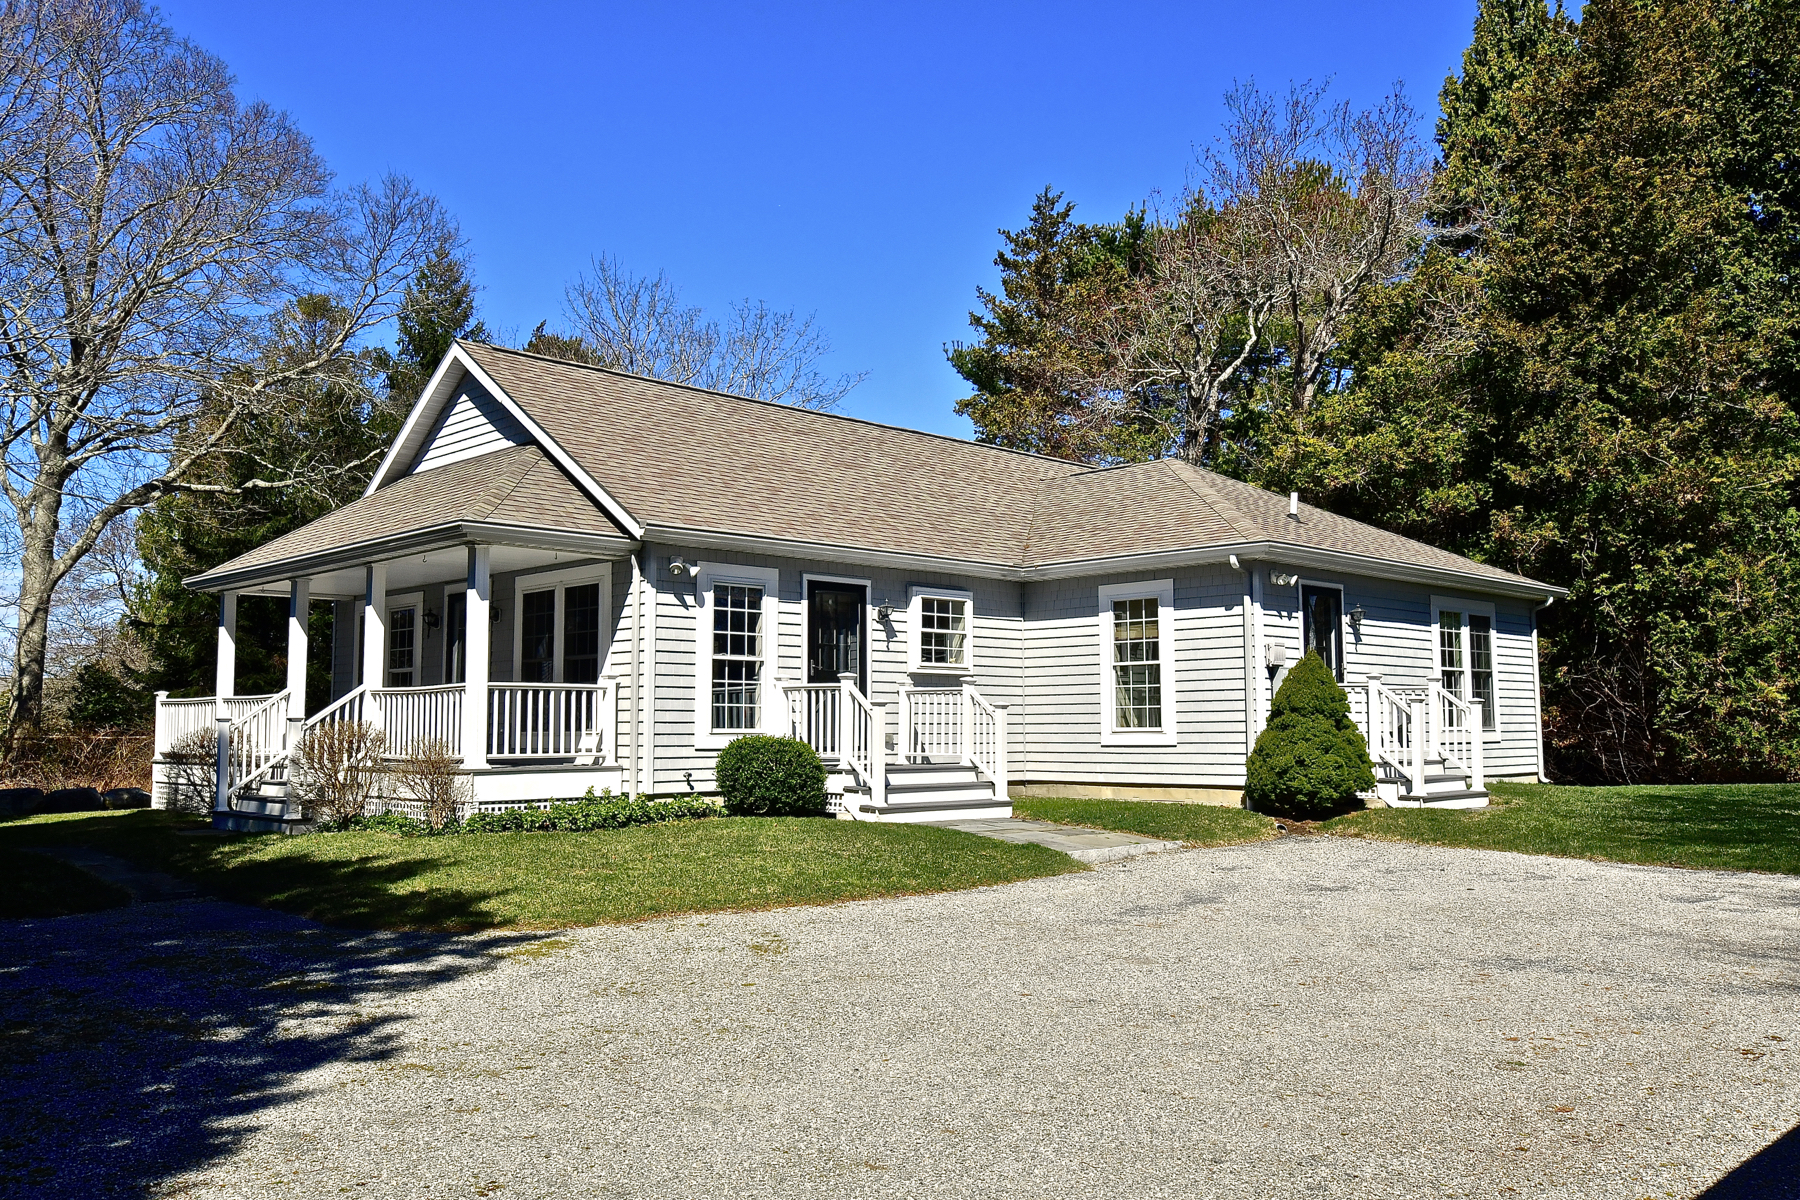 Single Family Homes for Sale at Private, Charming Home in Old Black Point 290 R Old Black Point Rd East Lyme, Connecticut 06357 United States